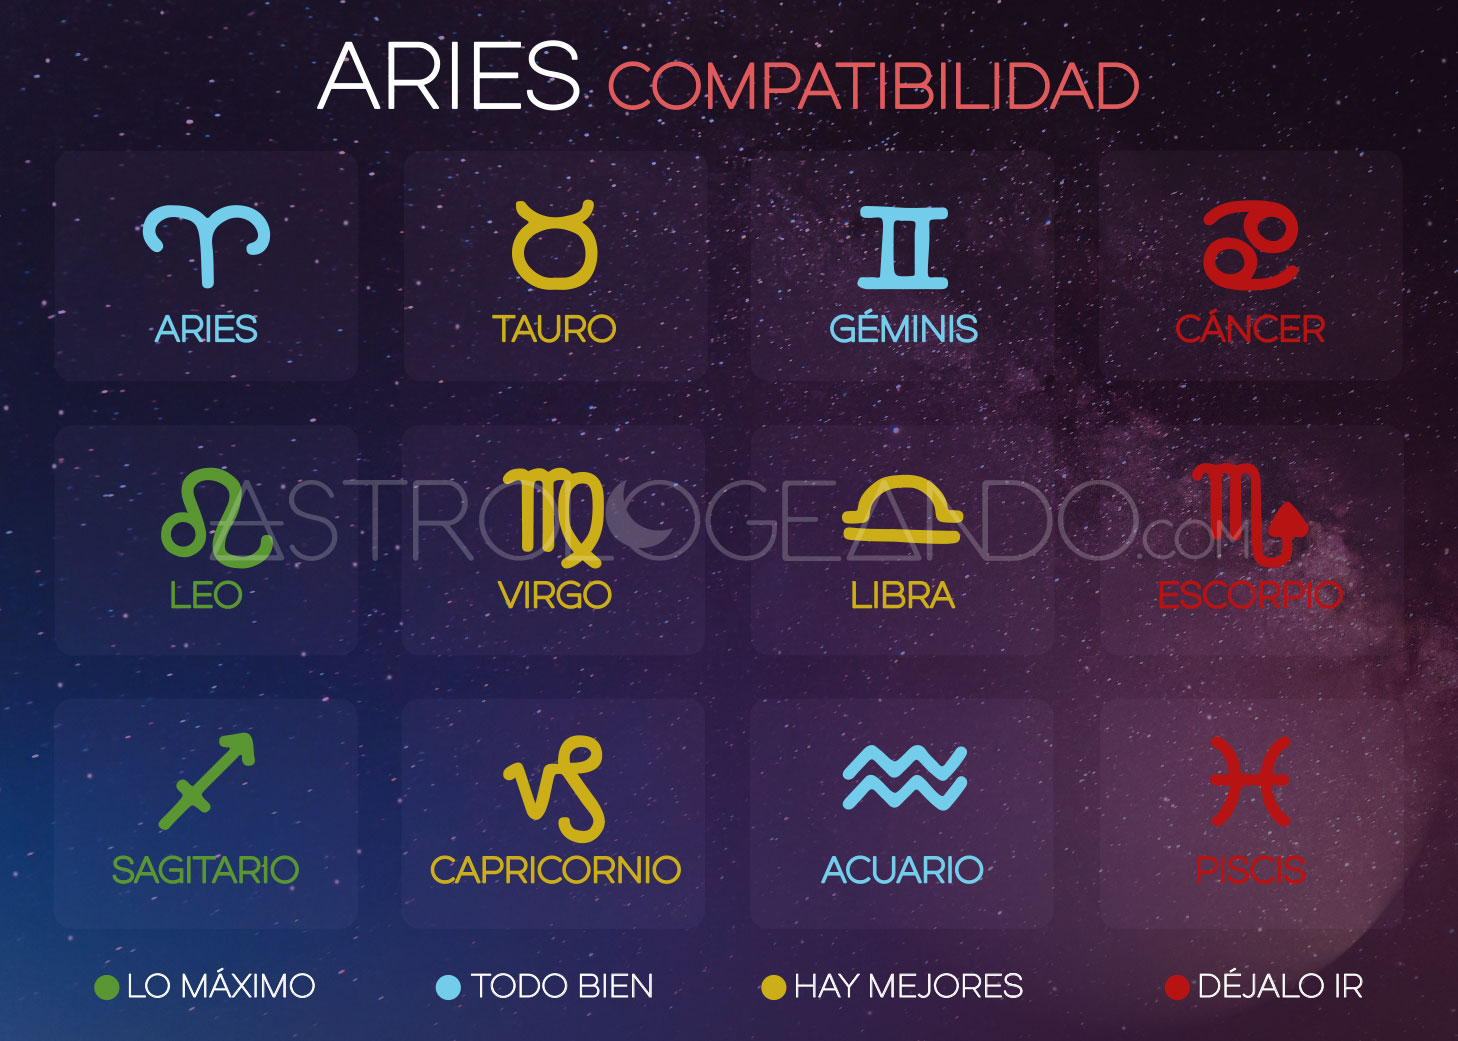 Horoscopos mas compatibles con geminis - accessibilitycenters-project.eu